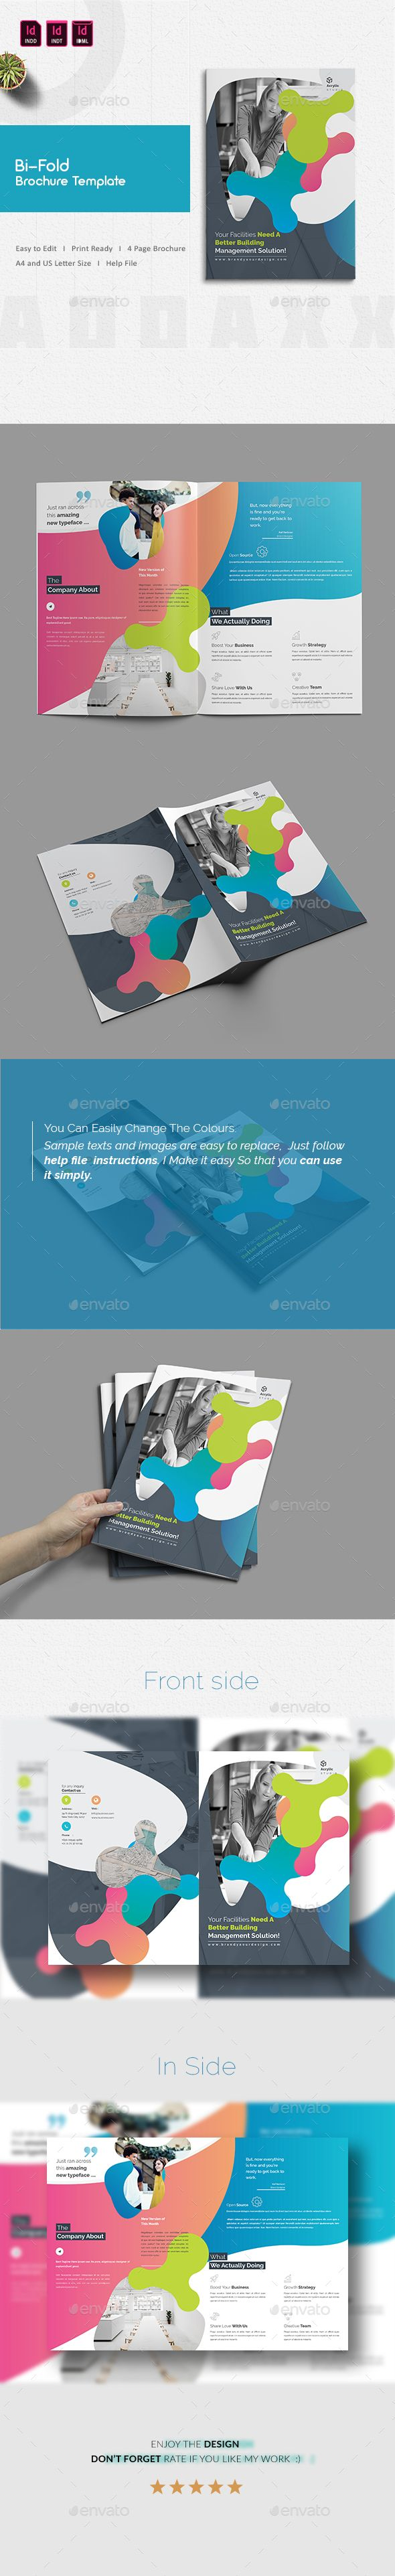 Bi-Fold Brochure Template | Brochure Template, Brochures And Corporate  Brochure